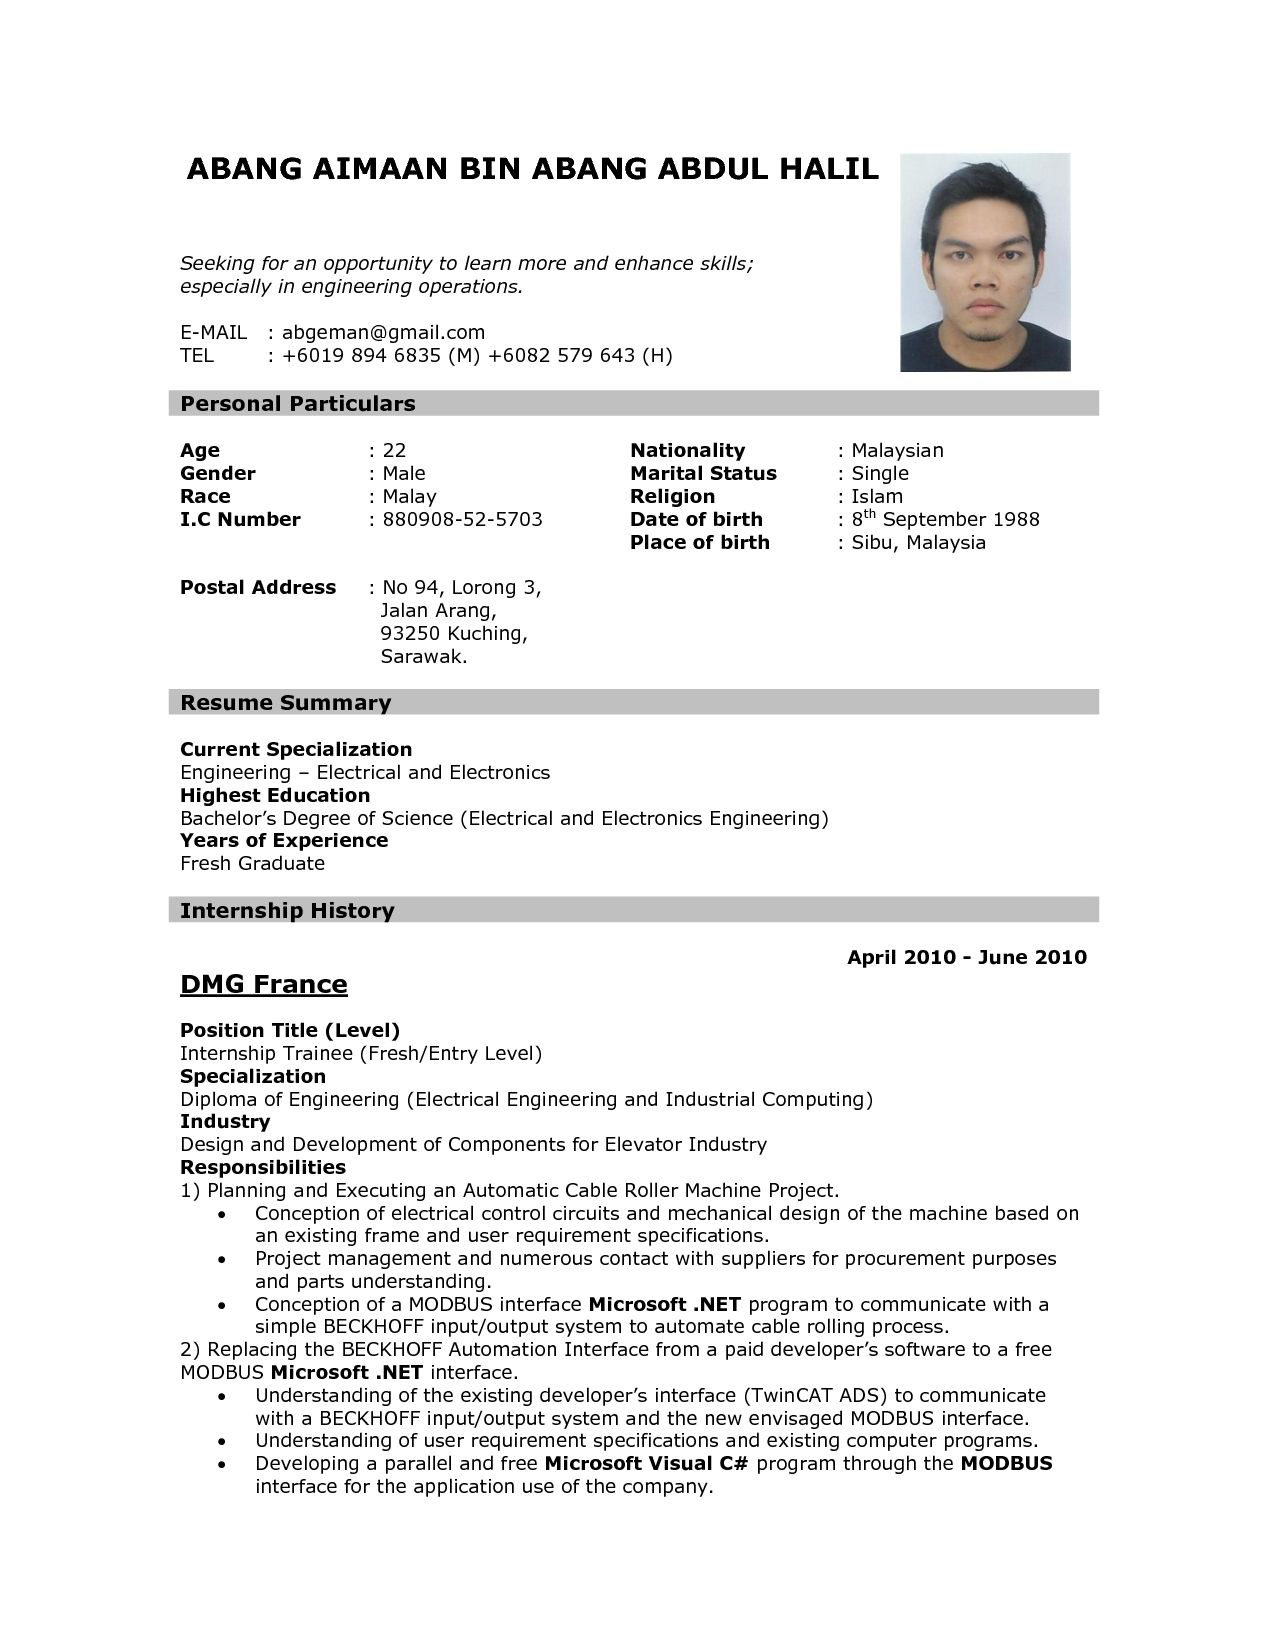 Format of resume for job application to download data sample resume format of resume for job application to download data sample resume the sample resume for applying a job expocarfo Image collections